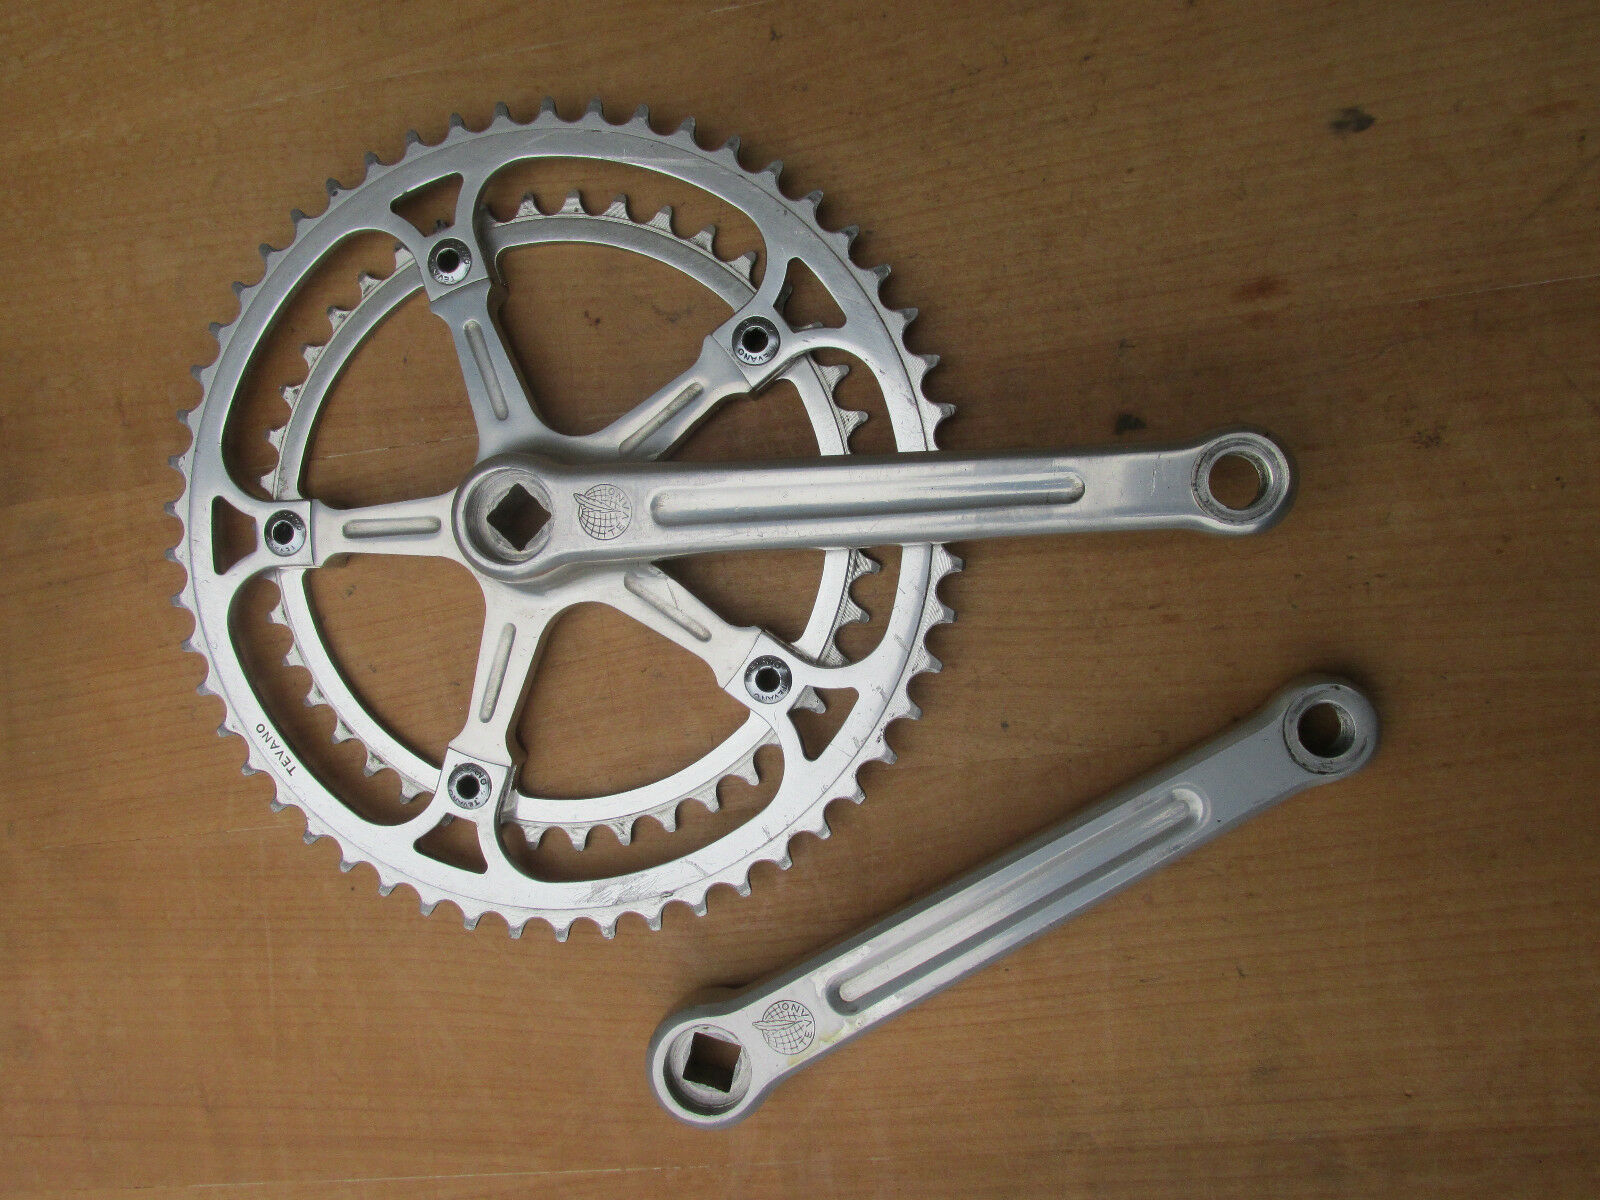 TEVANO SPECIALITES TA PEDALIER VELO COURSE ROAD RACE BICYCLE CRANKSET 170 42 53